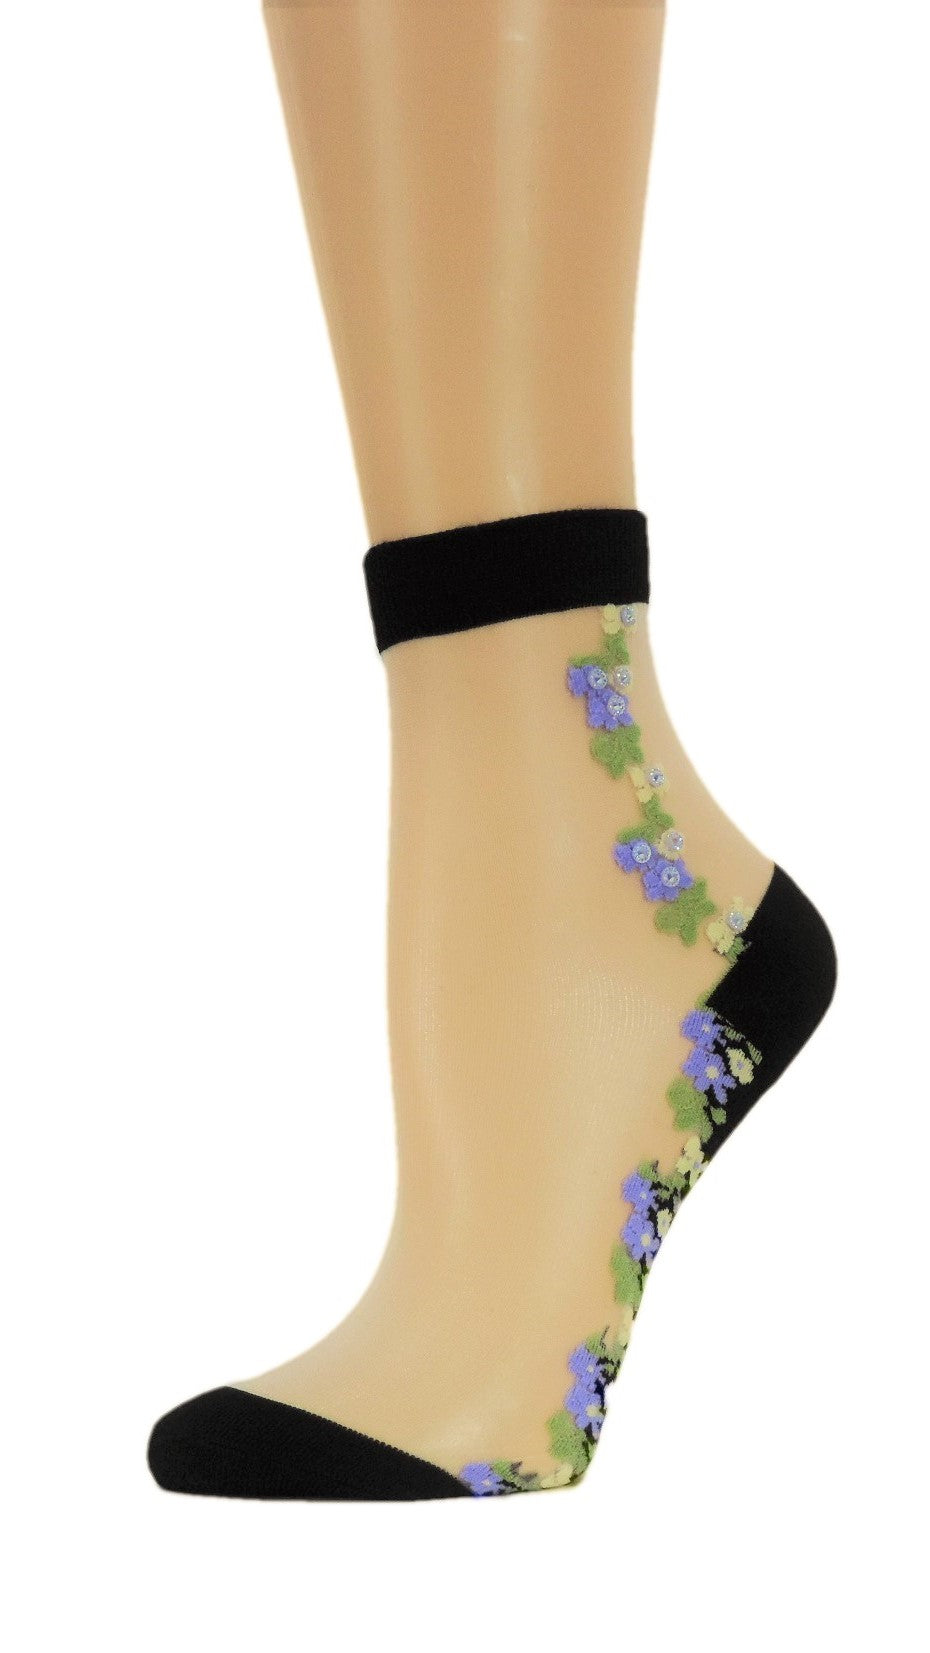 Wild Purple Flowers Custom Sheer Socks with crystals